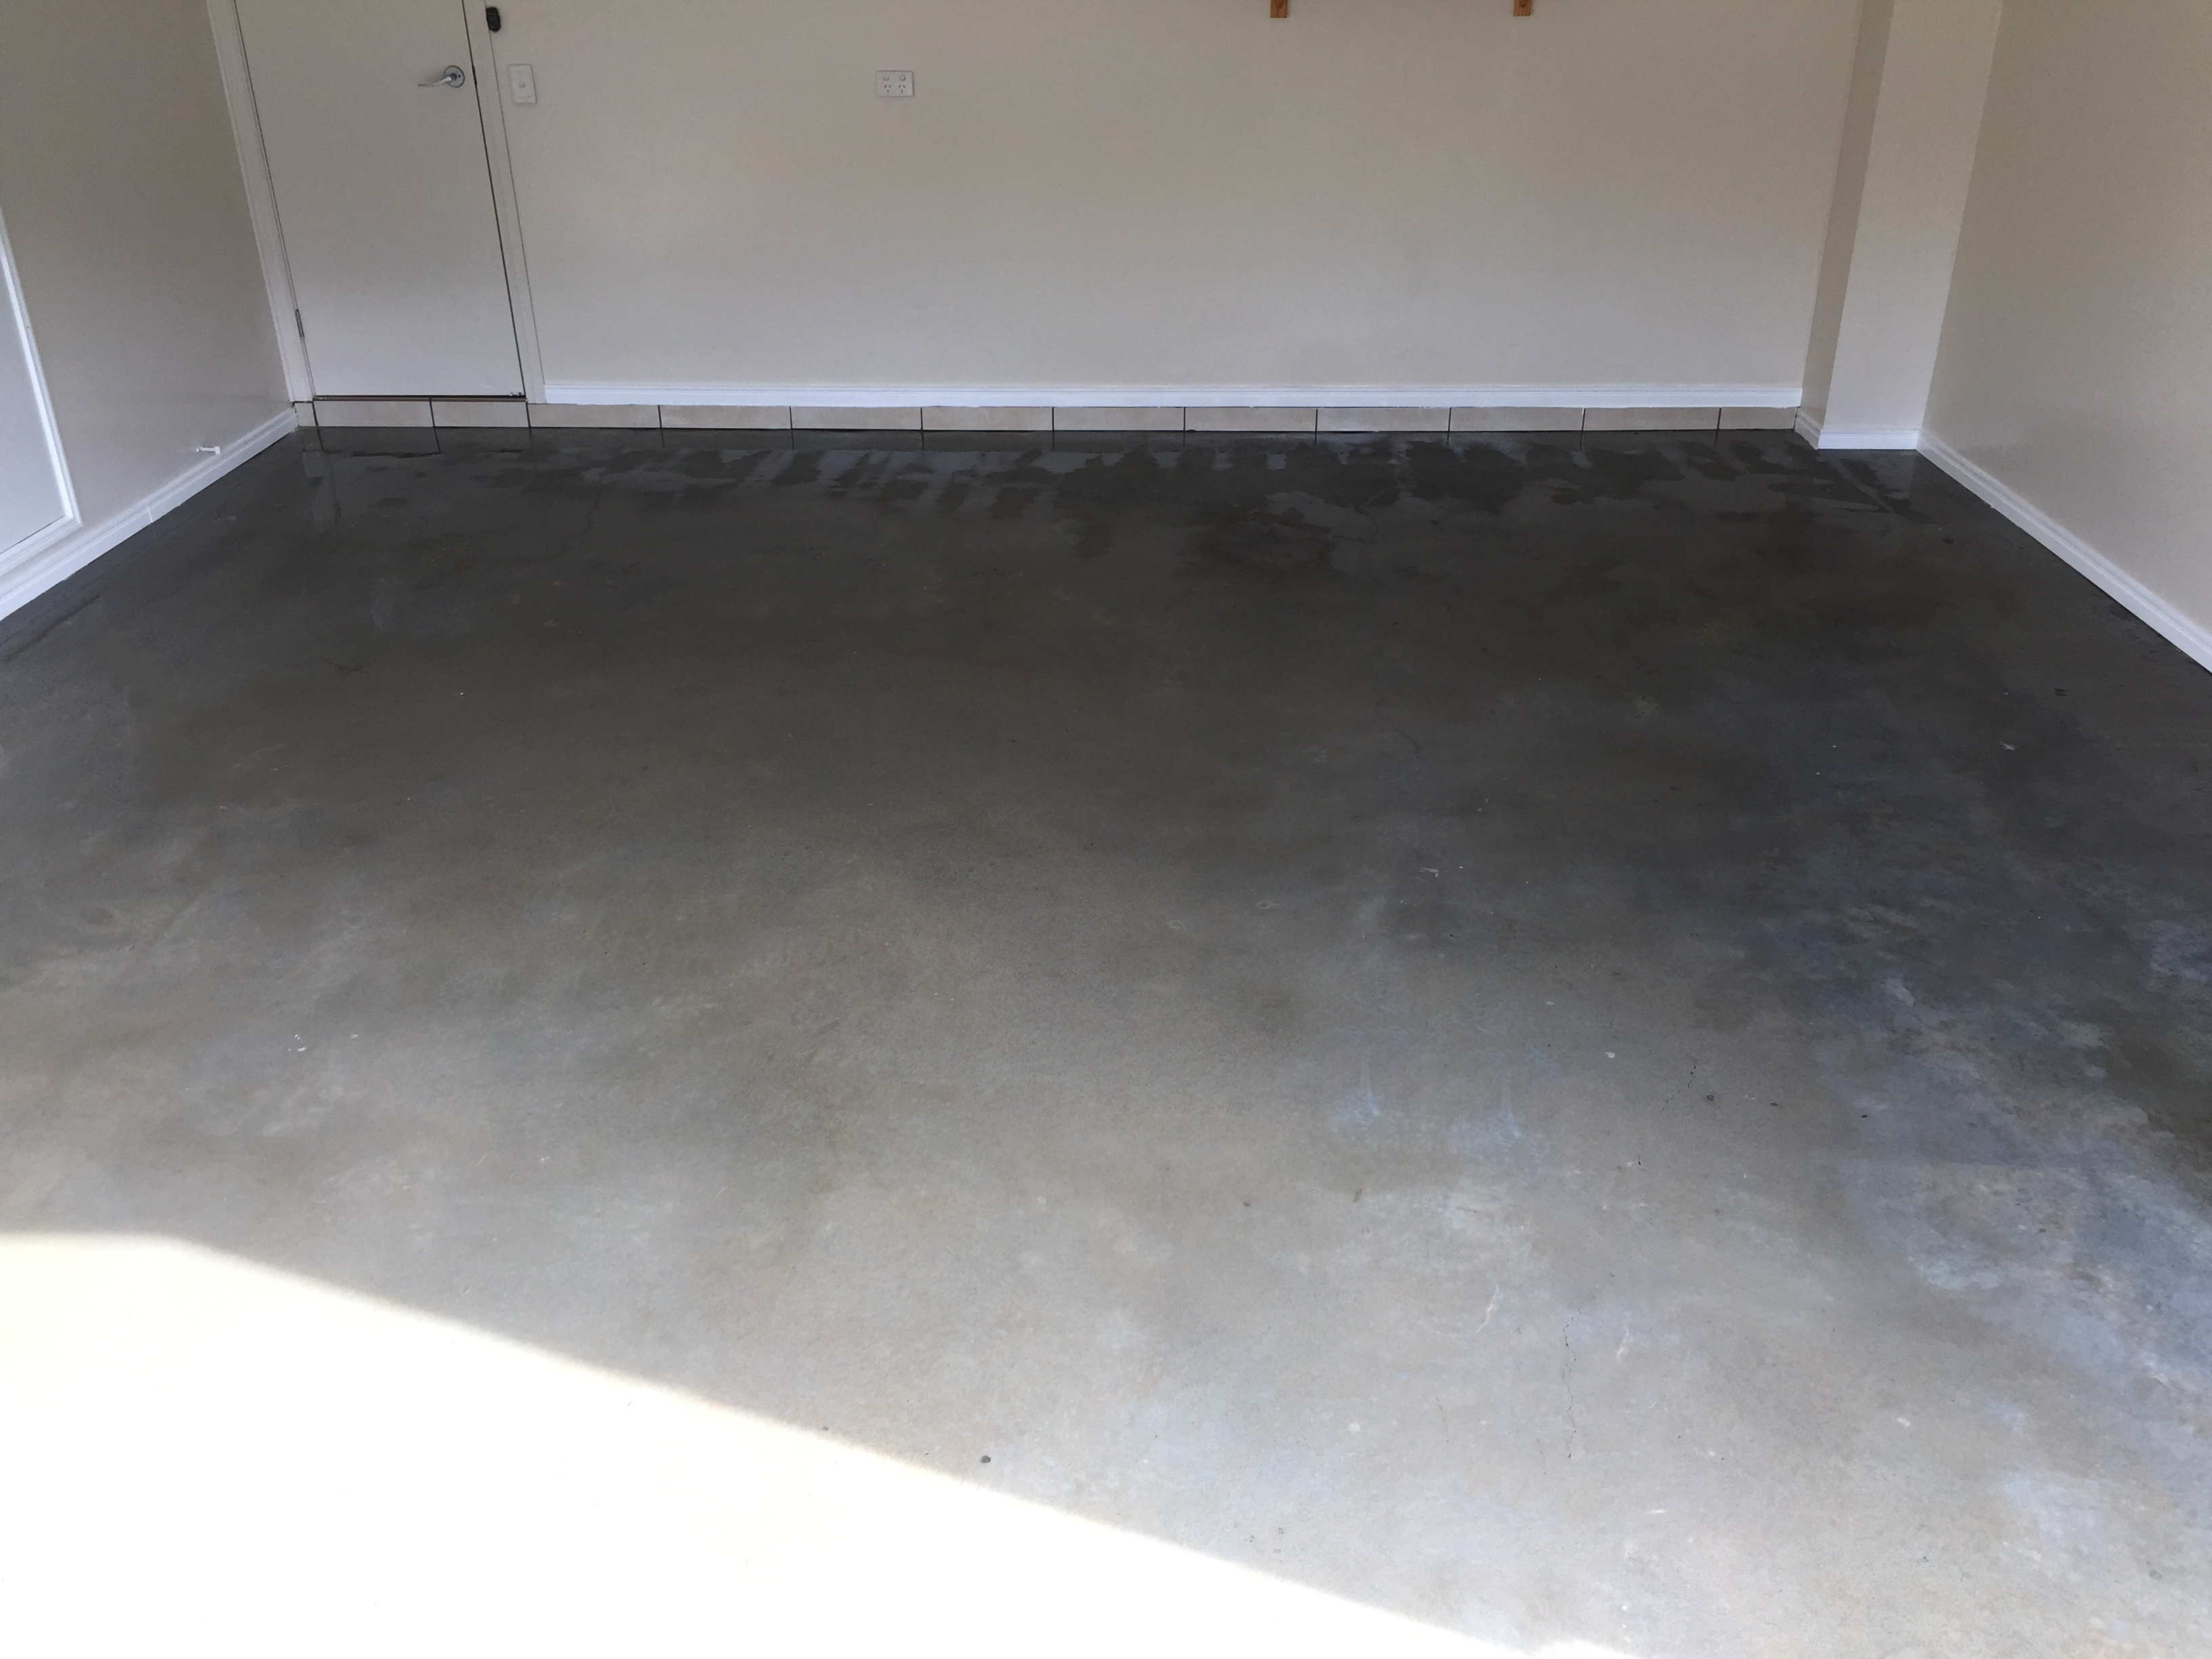 Garage floor after cleaning